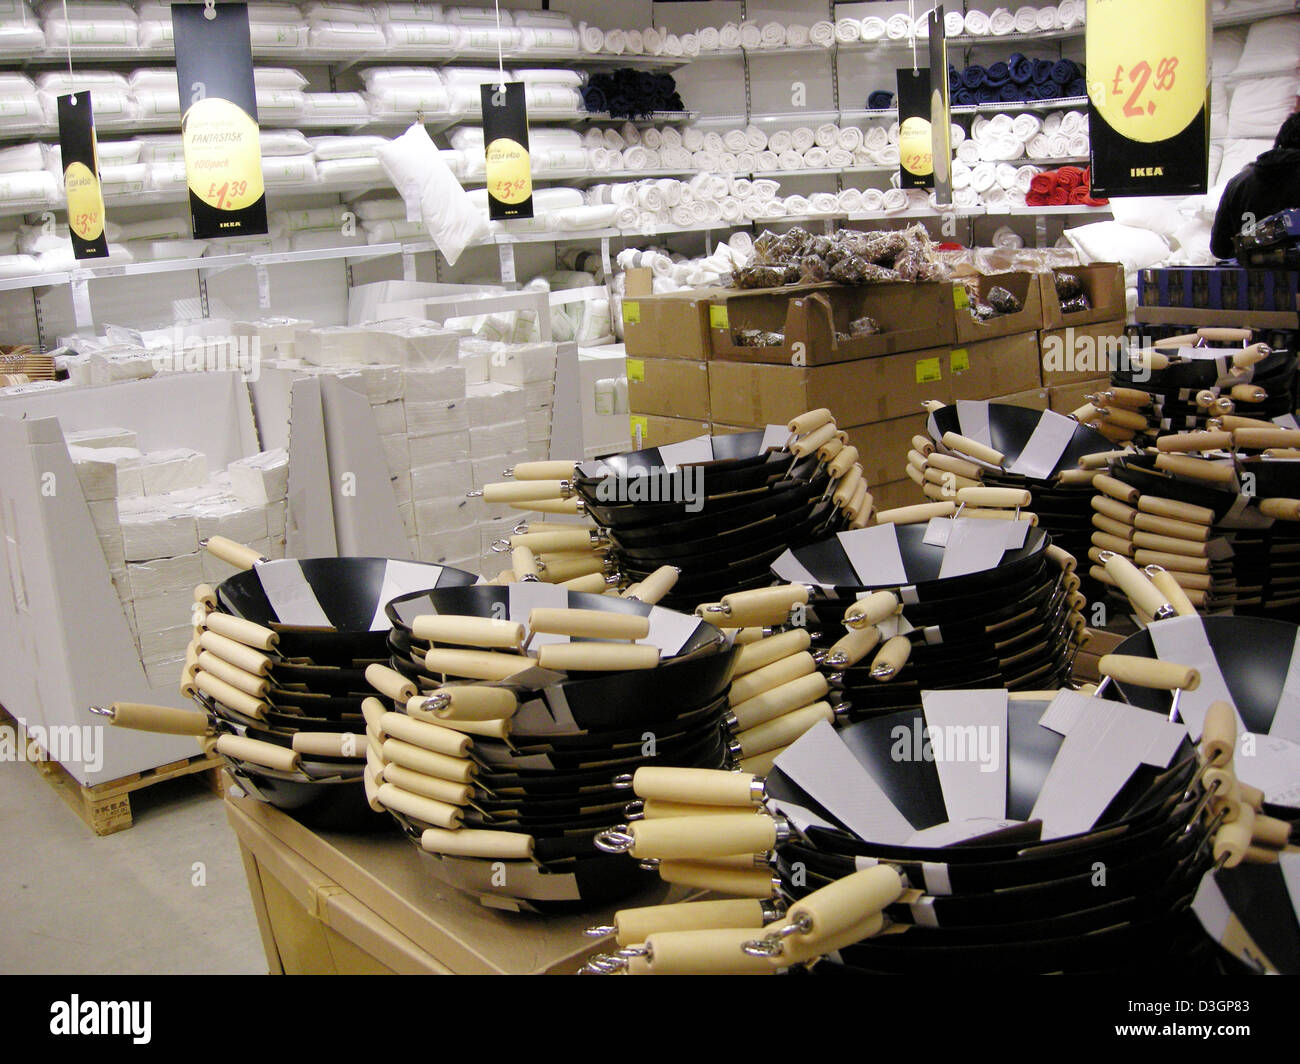 Ikea Store Retail Stock Photos  Ikea Store Retail Stock Images - Ikea world map sale